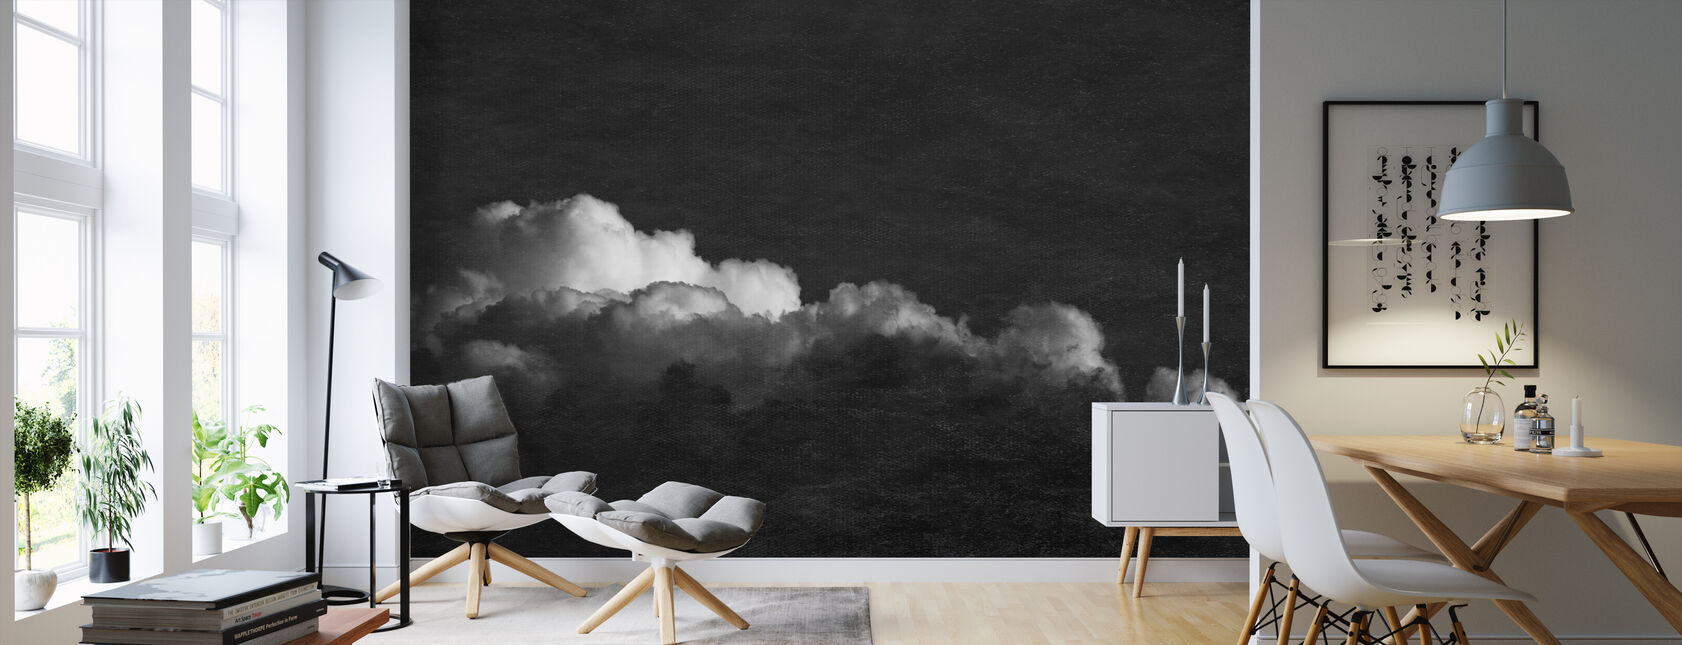 Gradient Cloud BW Filter - Wallpaper - Living Room